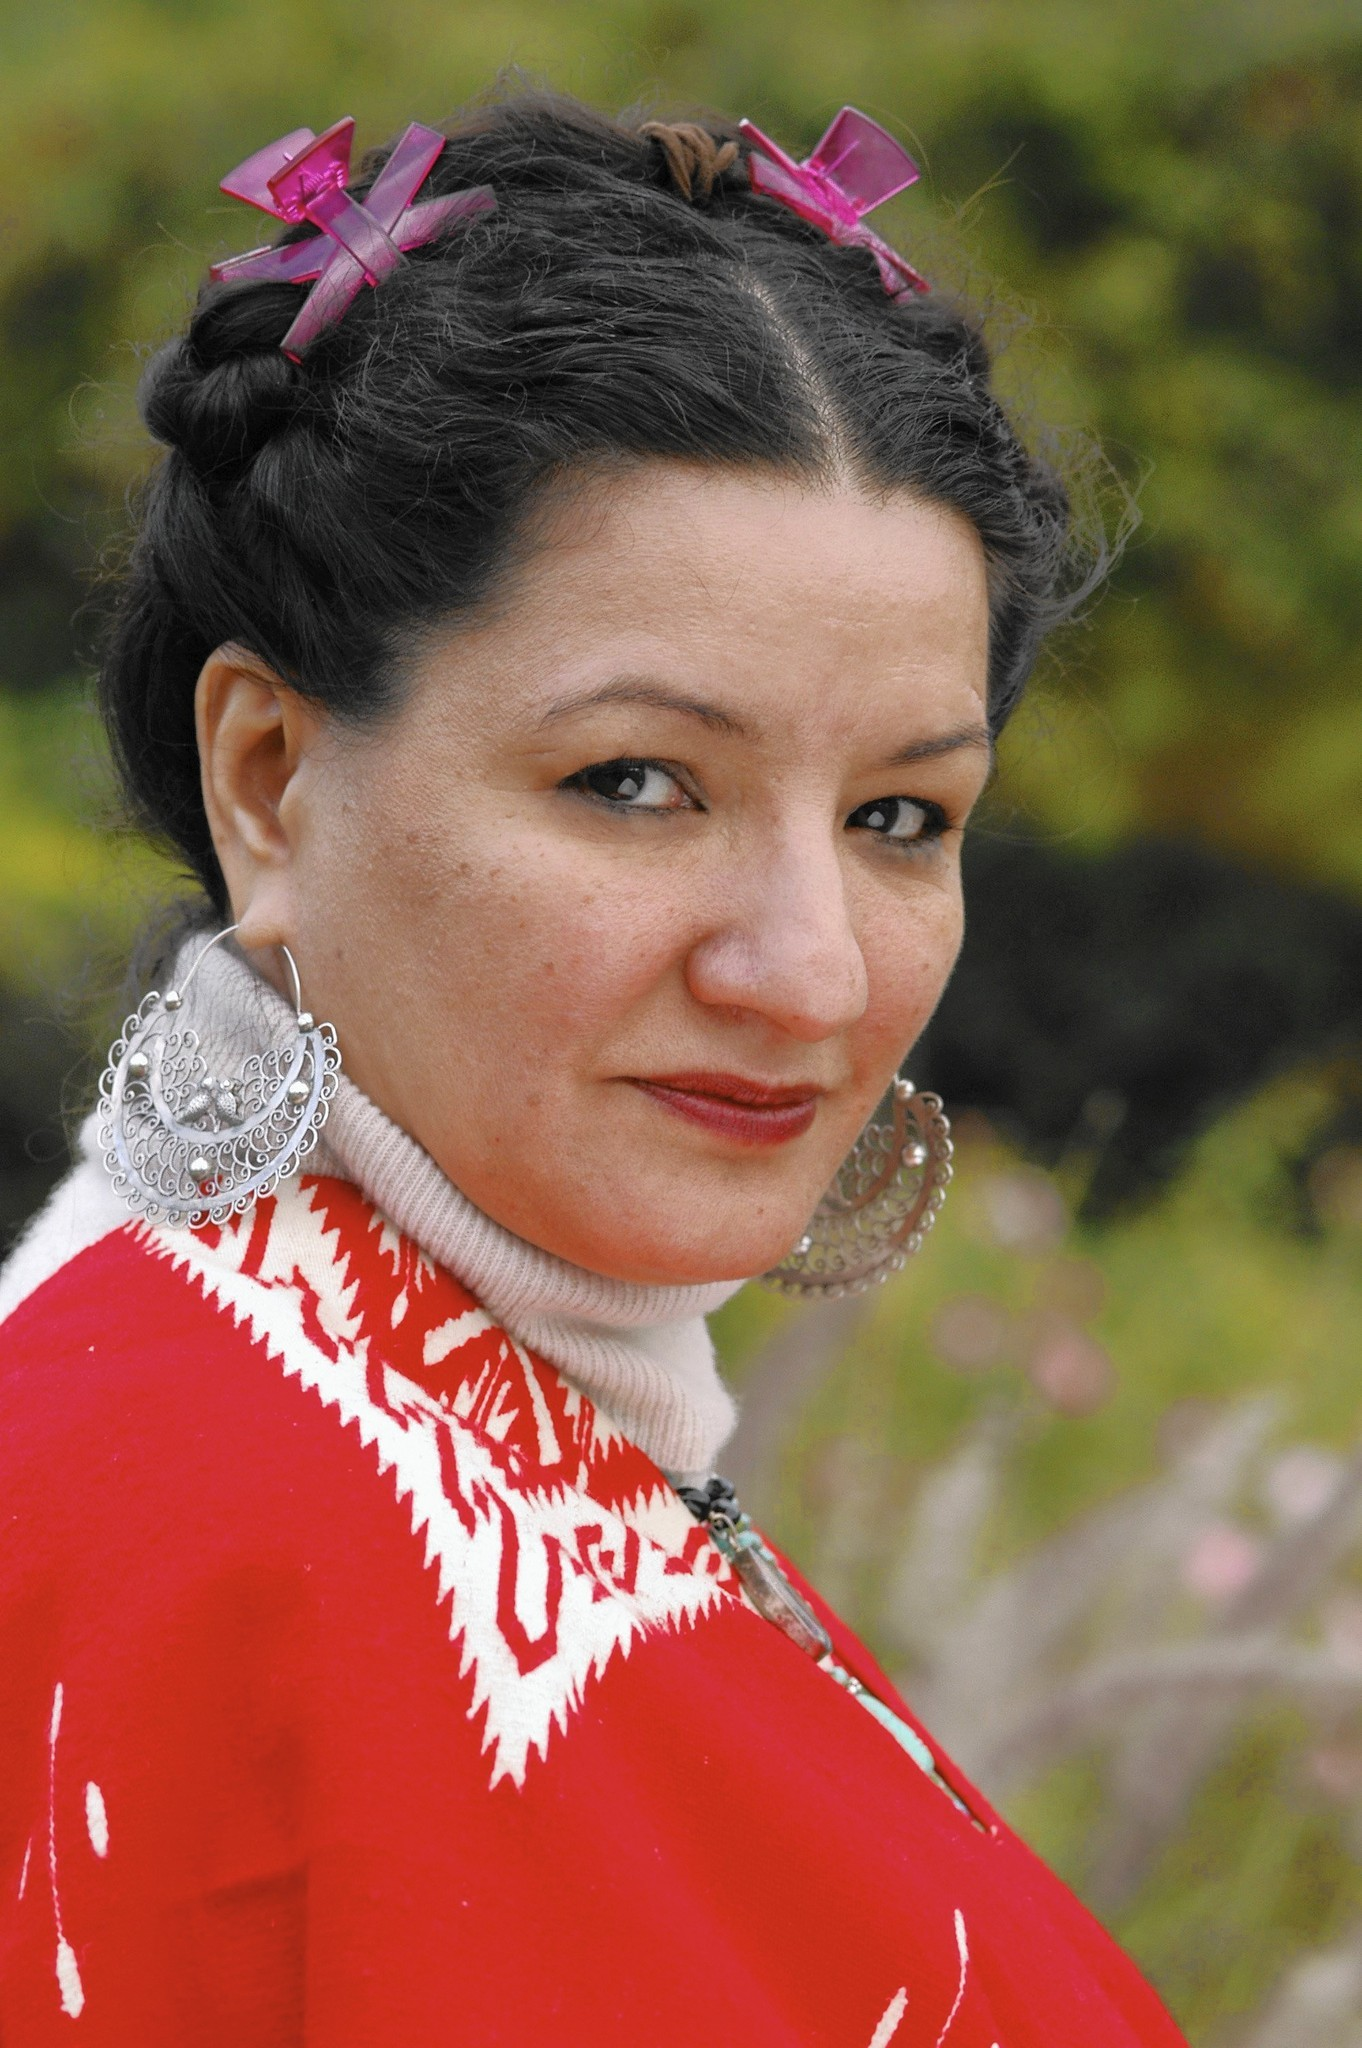 eleven by sandra cisneros analysis essay Essays and criticism on sandra cisneros - cisneros, sandra - (poetry criticism.